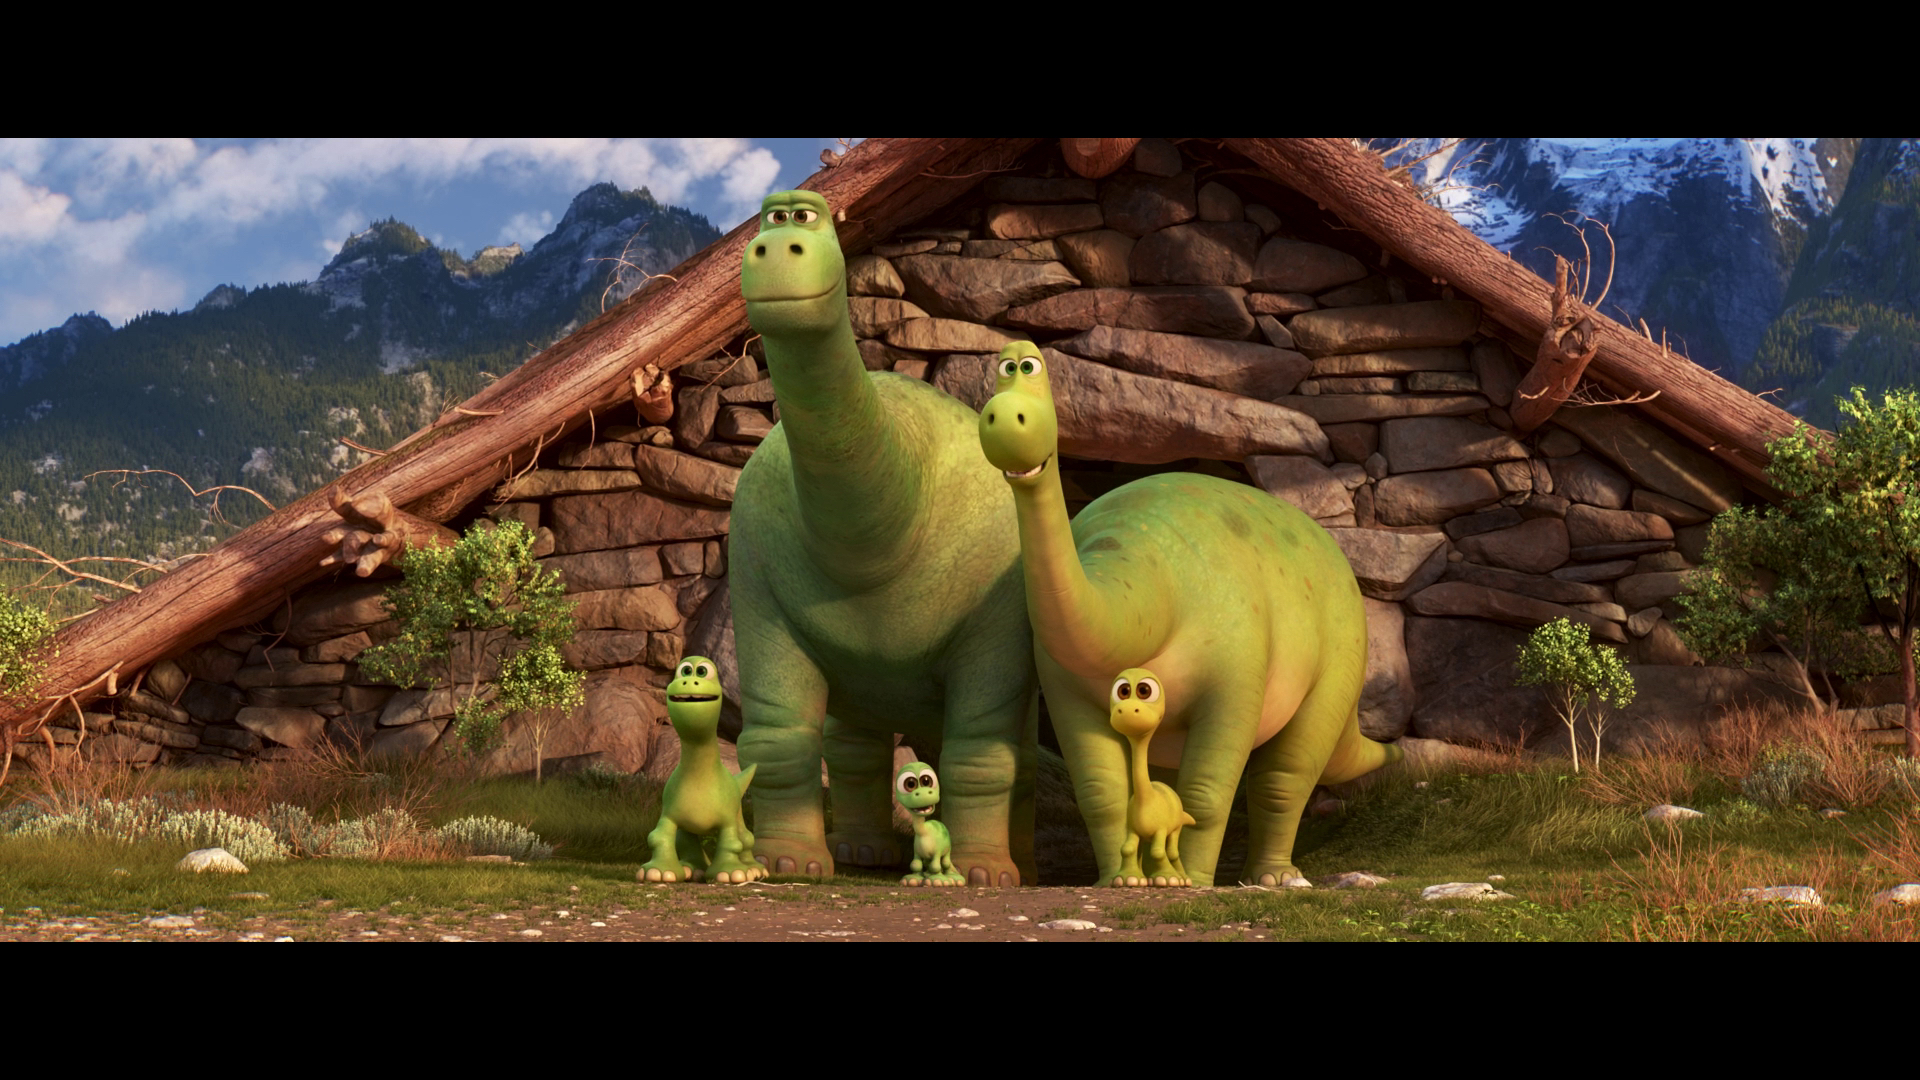 the good dinosaur blu ray dvd talk review of the blu ray